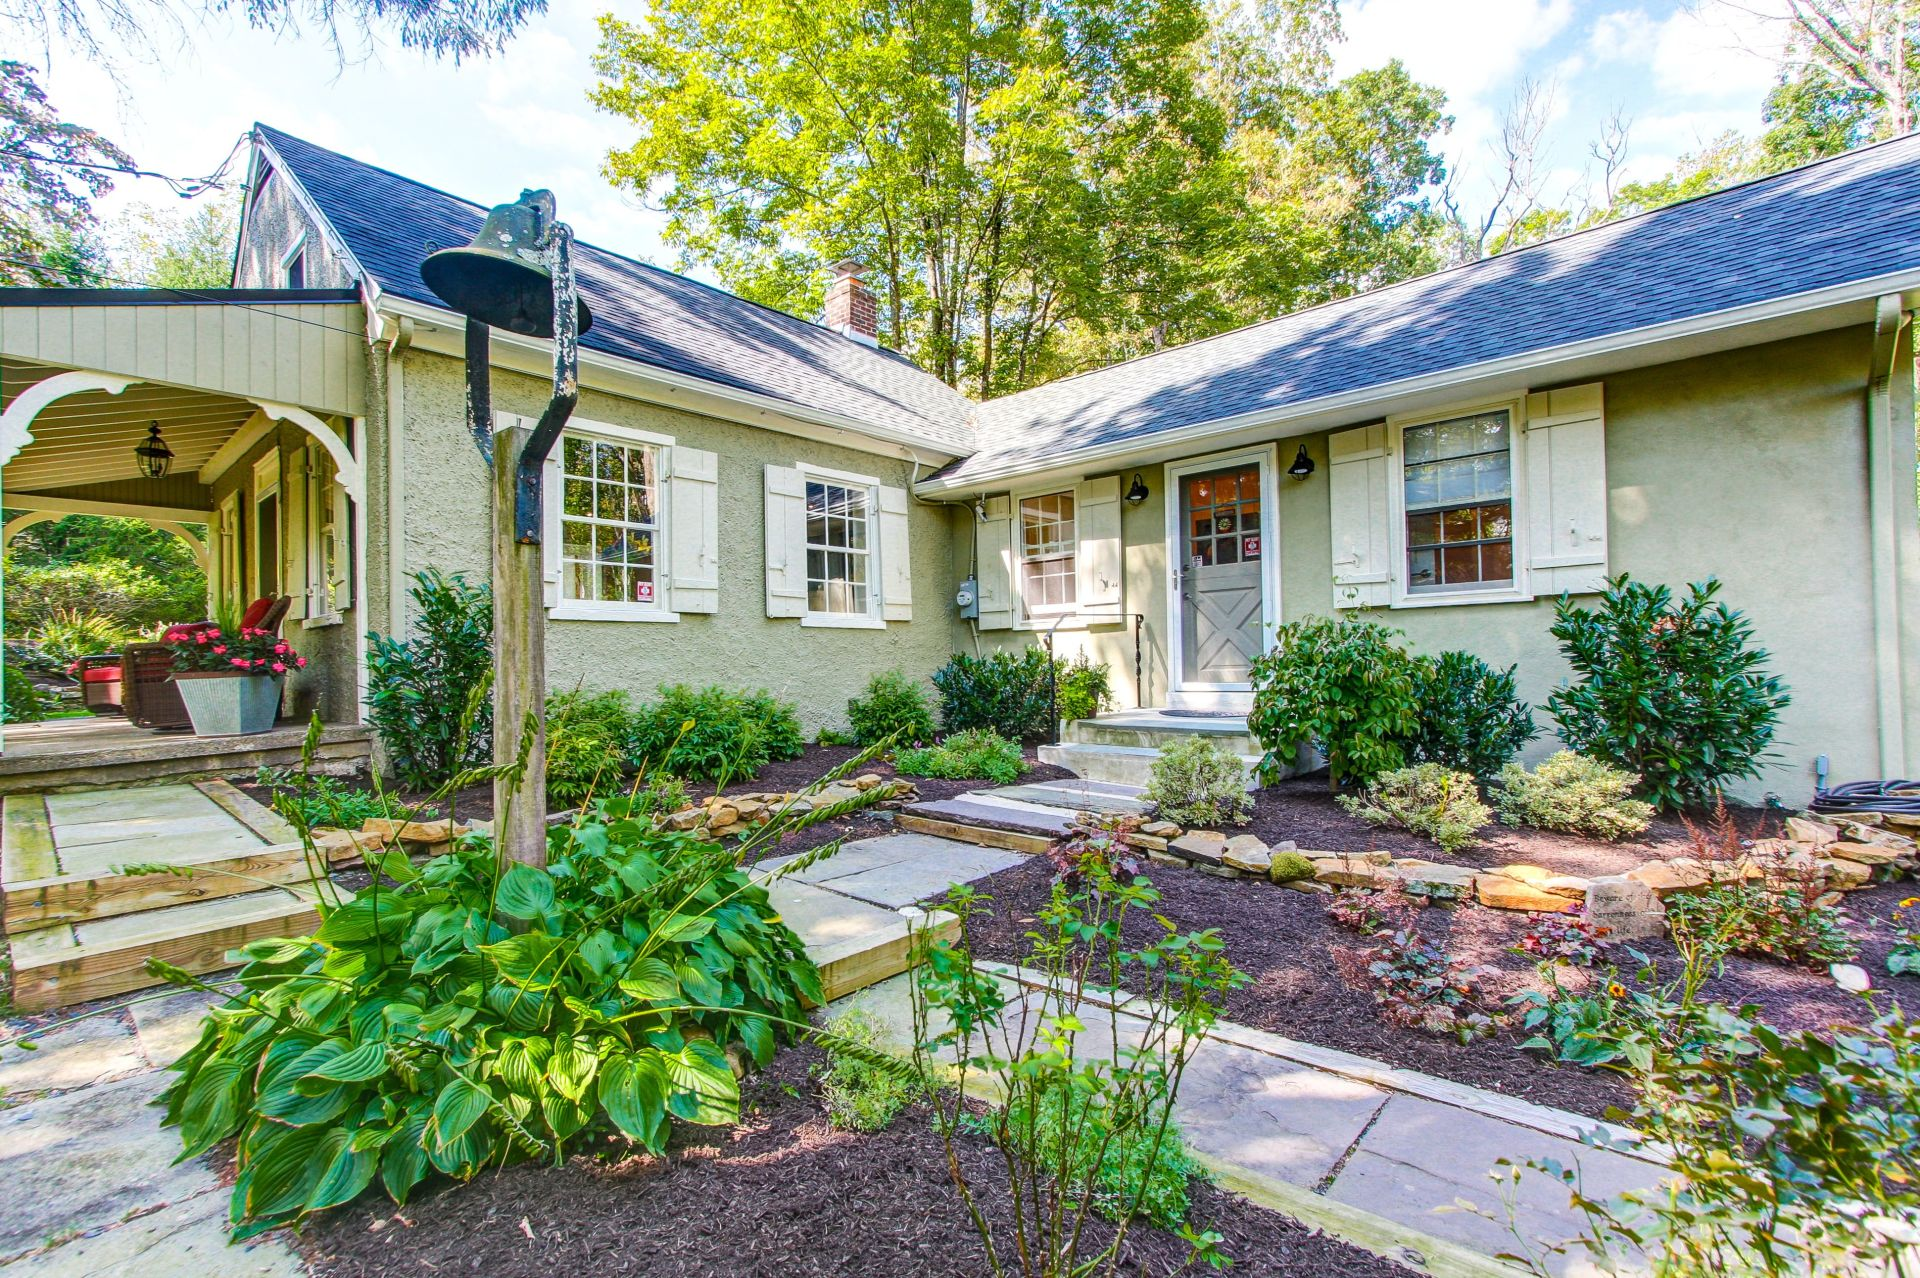 Converted One-Room Schoolhouse For Sale In Upper Bucks County!